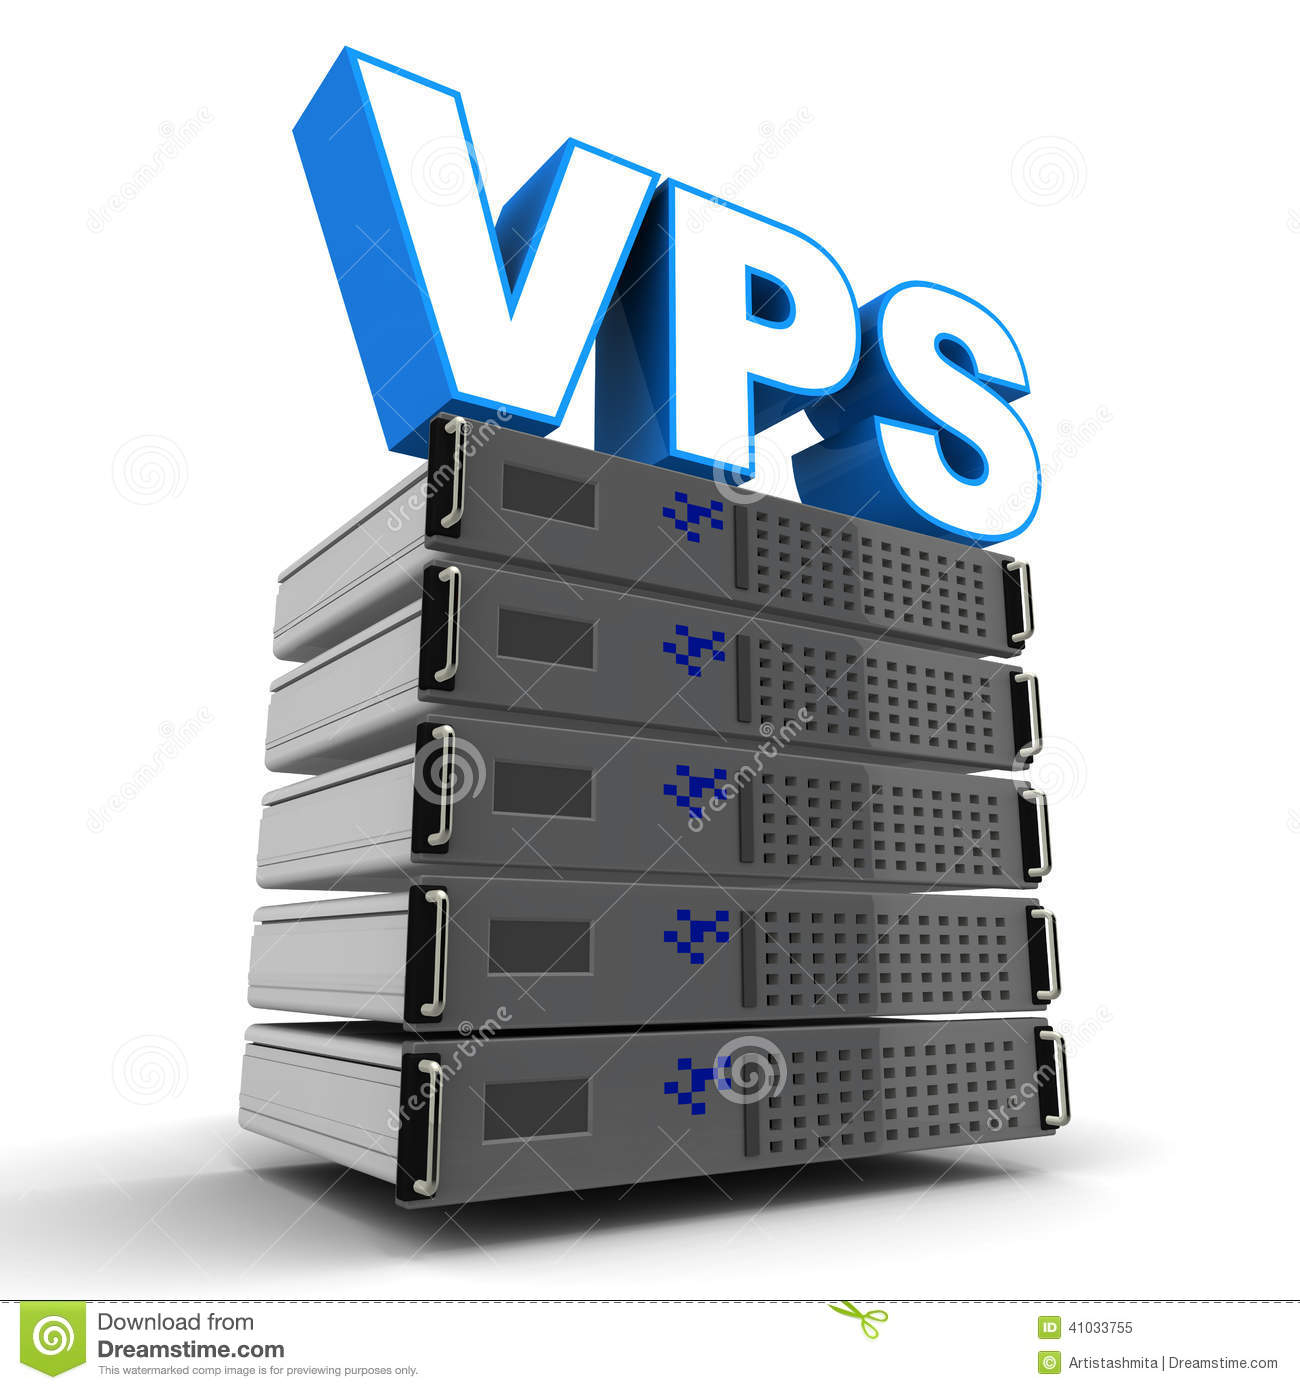 Windows VPS Server with 1 GB RAM and 2 GHz CPU